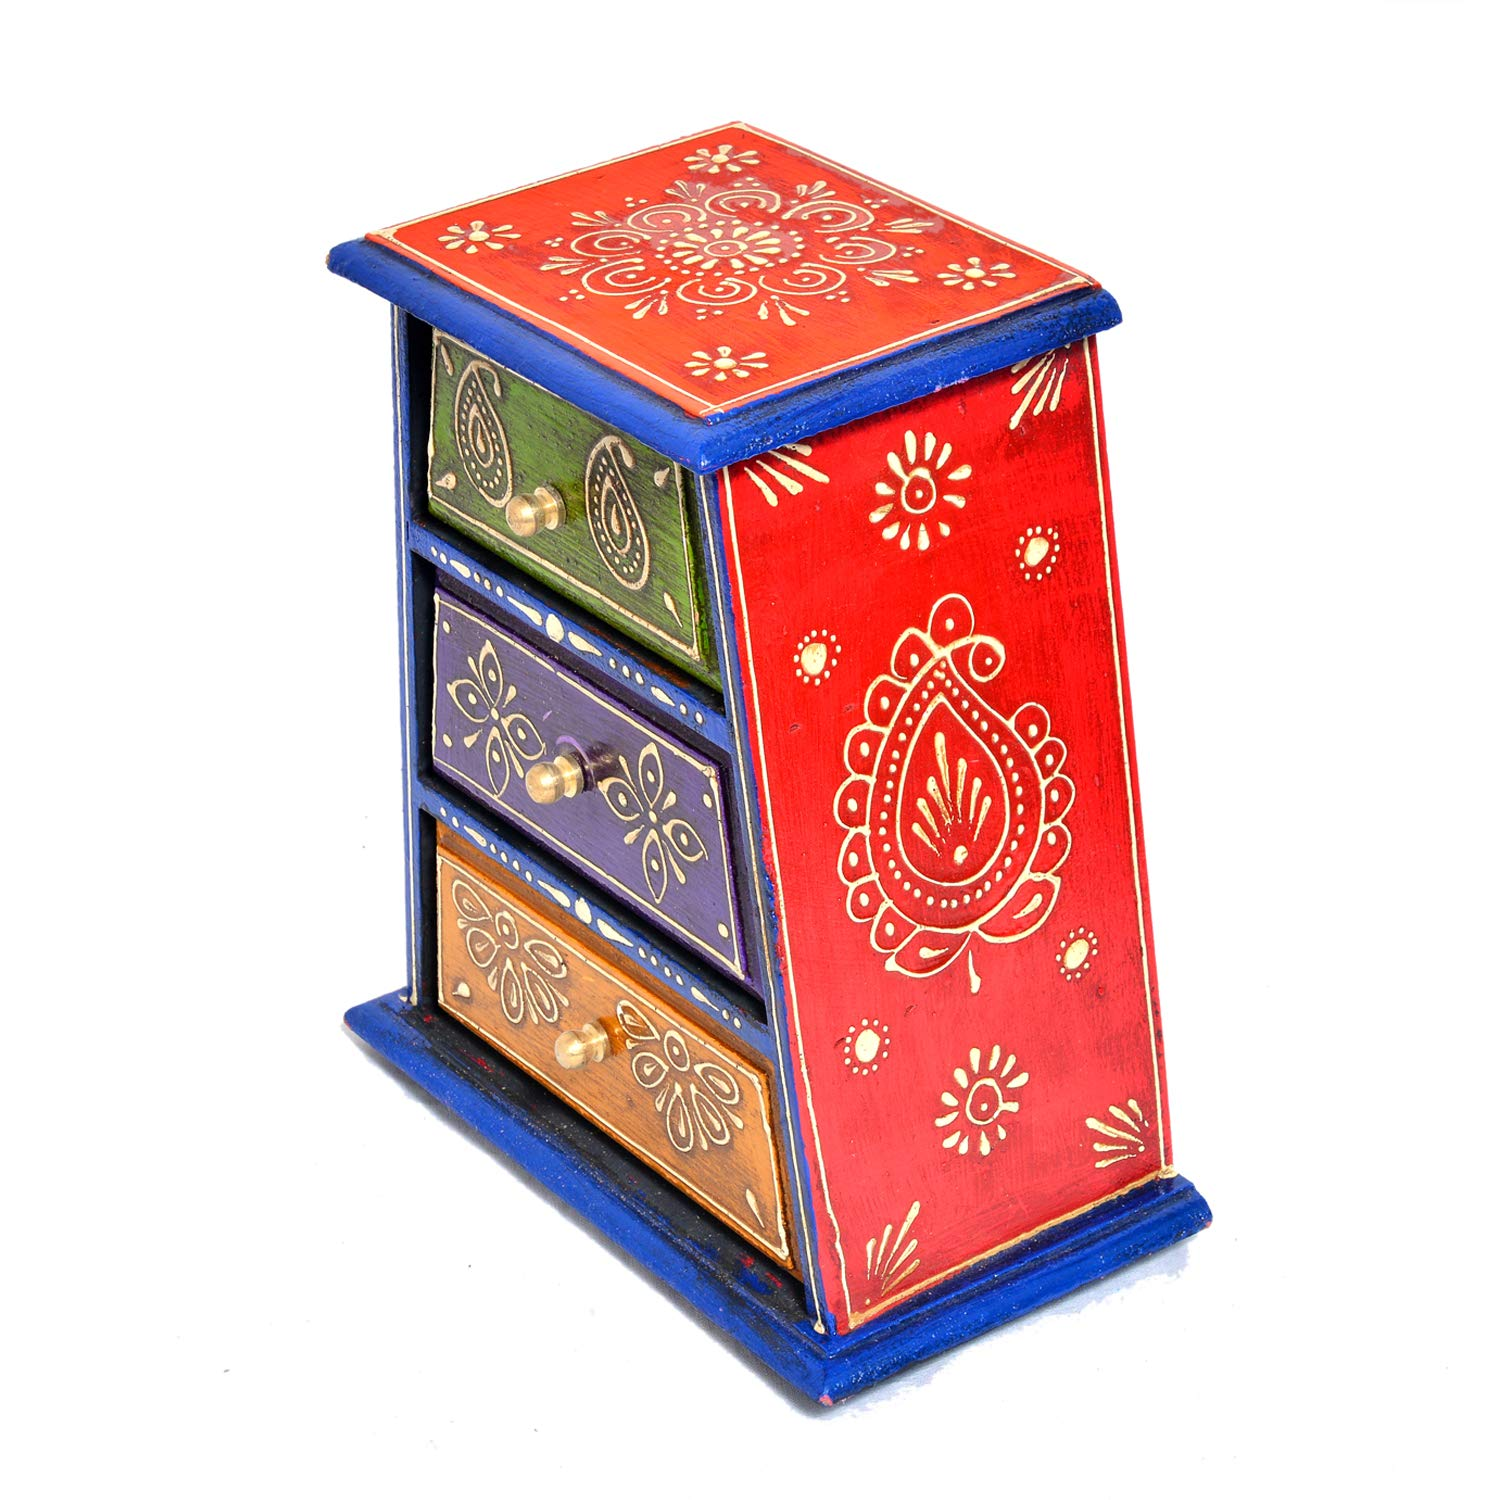 Eurasia Solid Wood Small Drawer Set, Includes 3 Drawers with Metal Label Holders by Eurasia (Image #4)